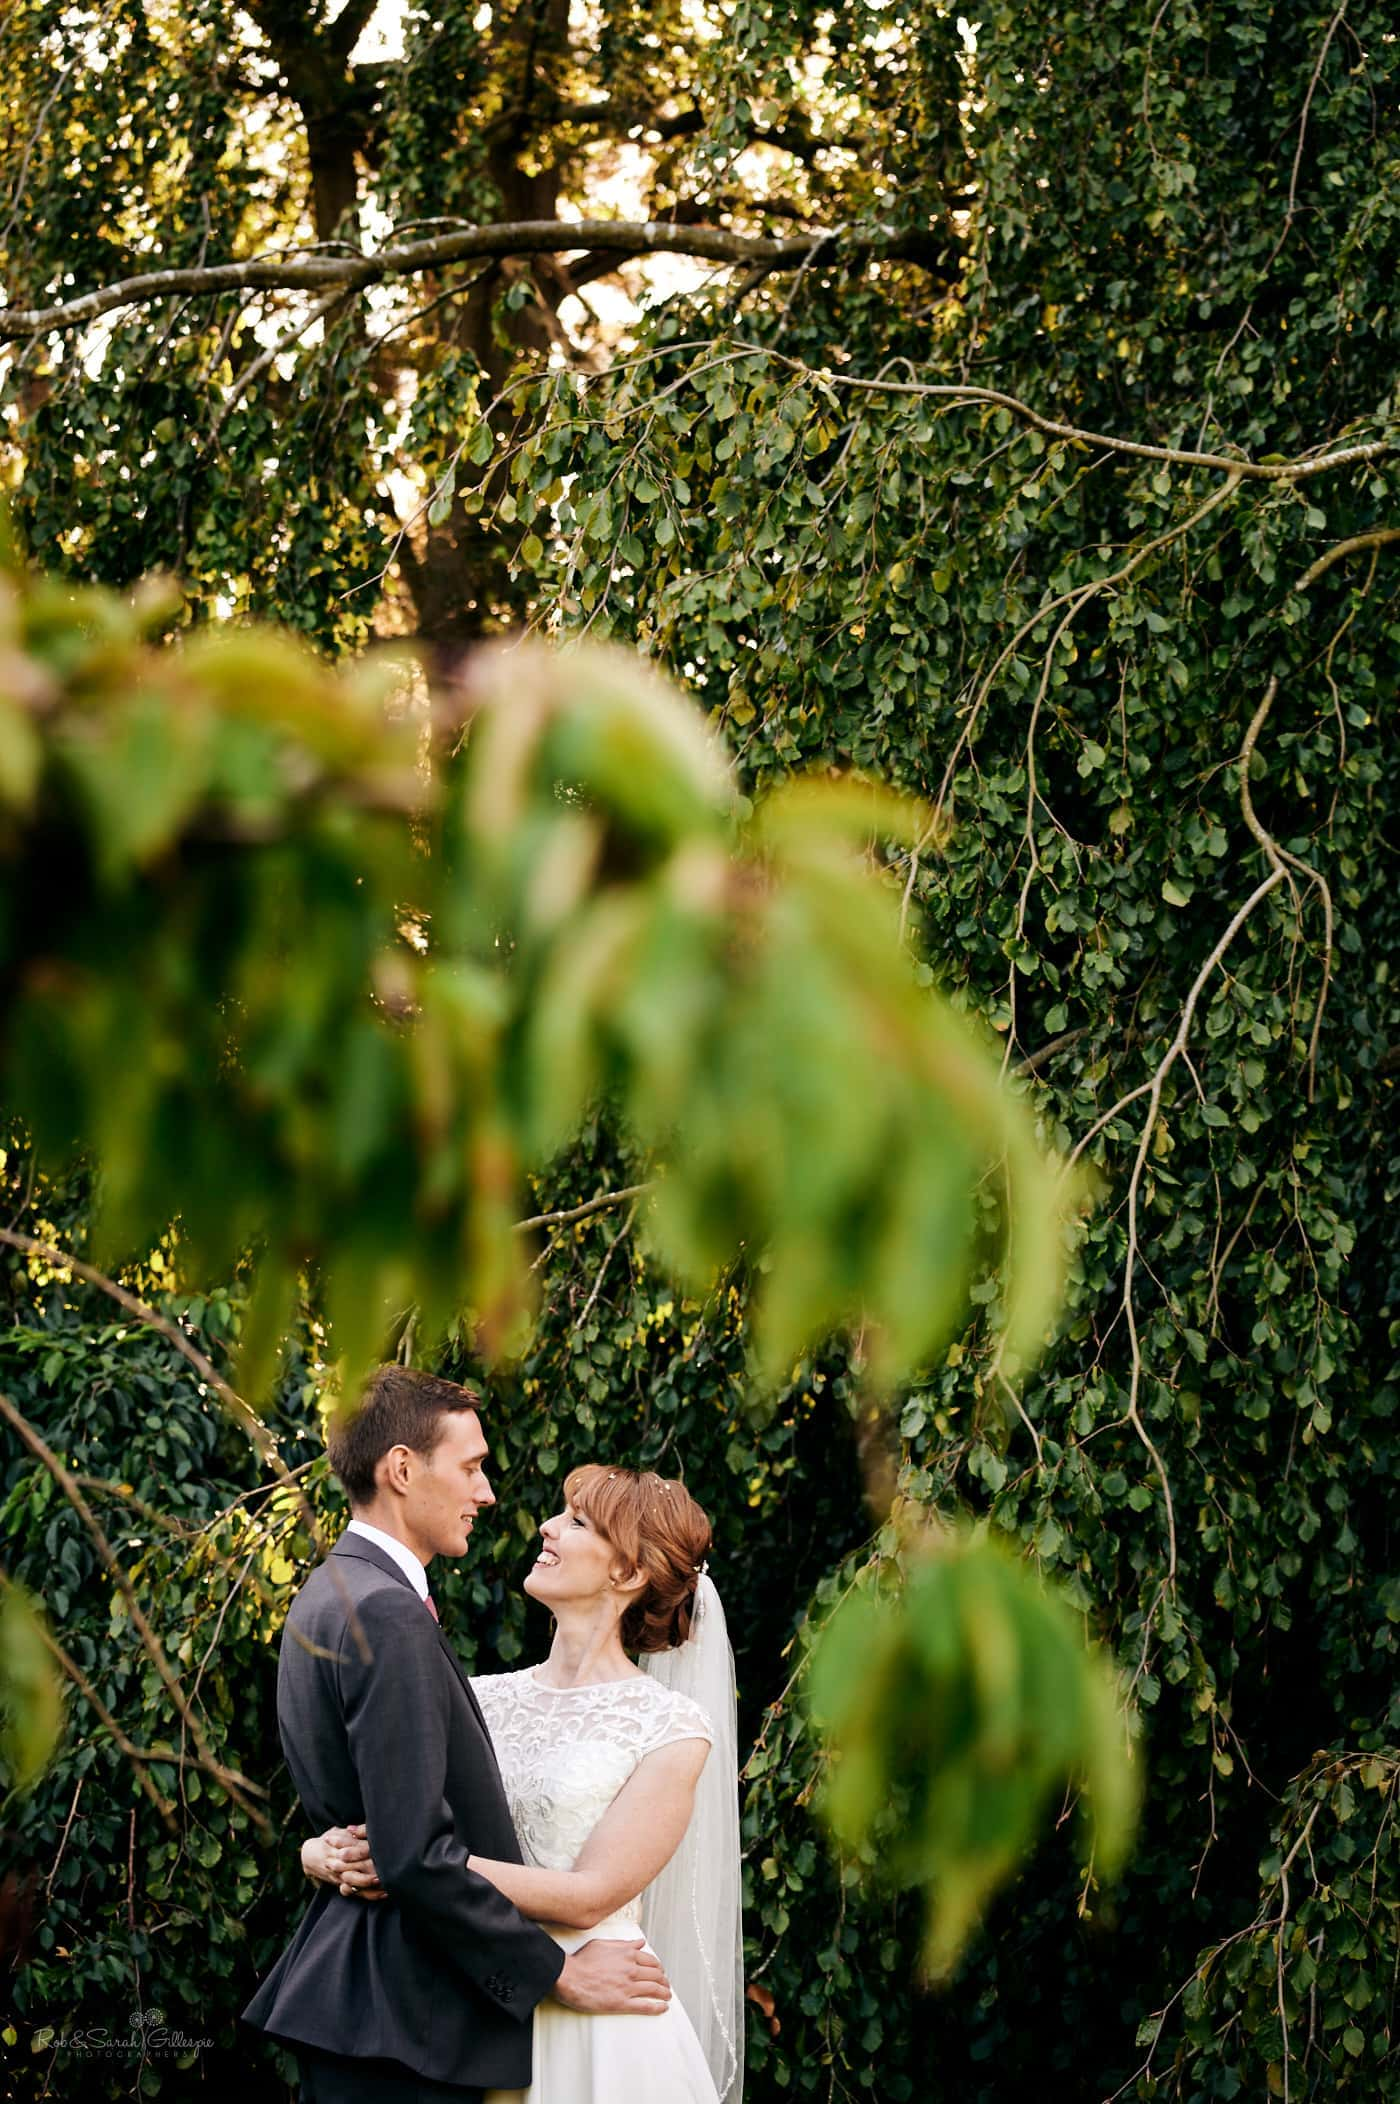 Bride and groom amongst low-hanging tree branches